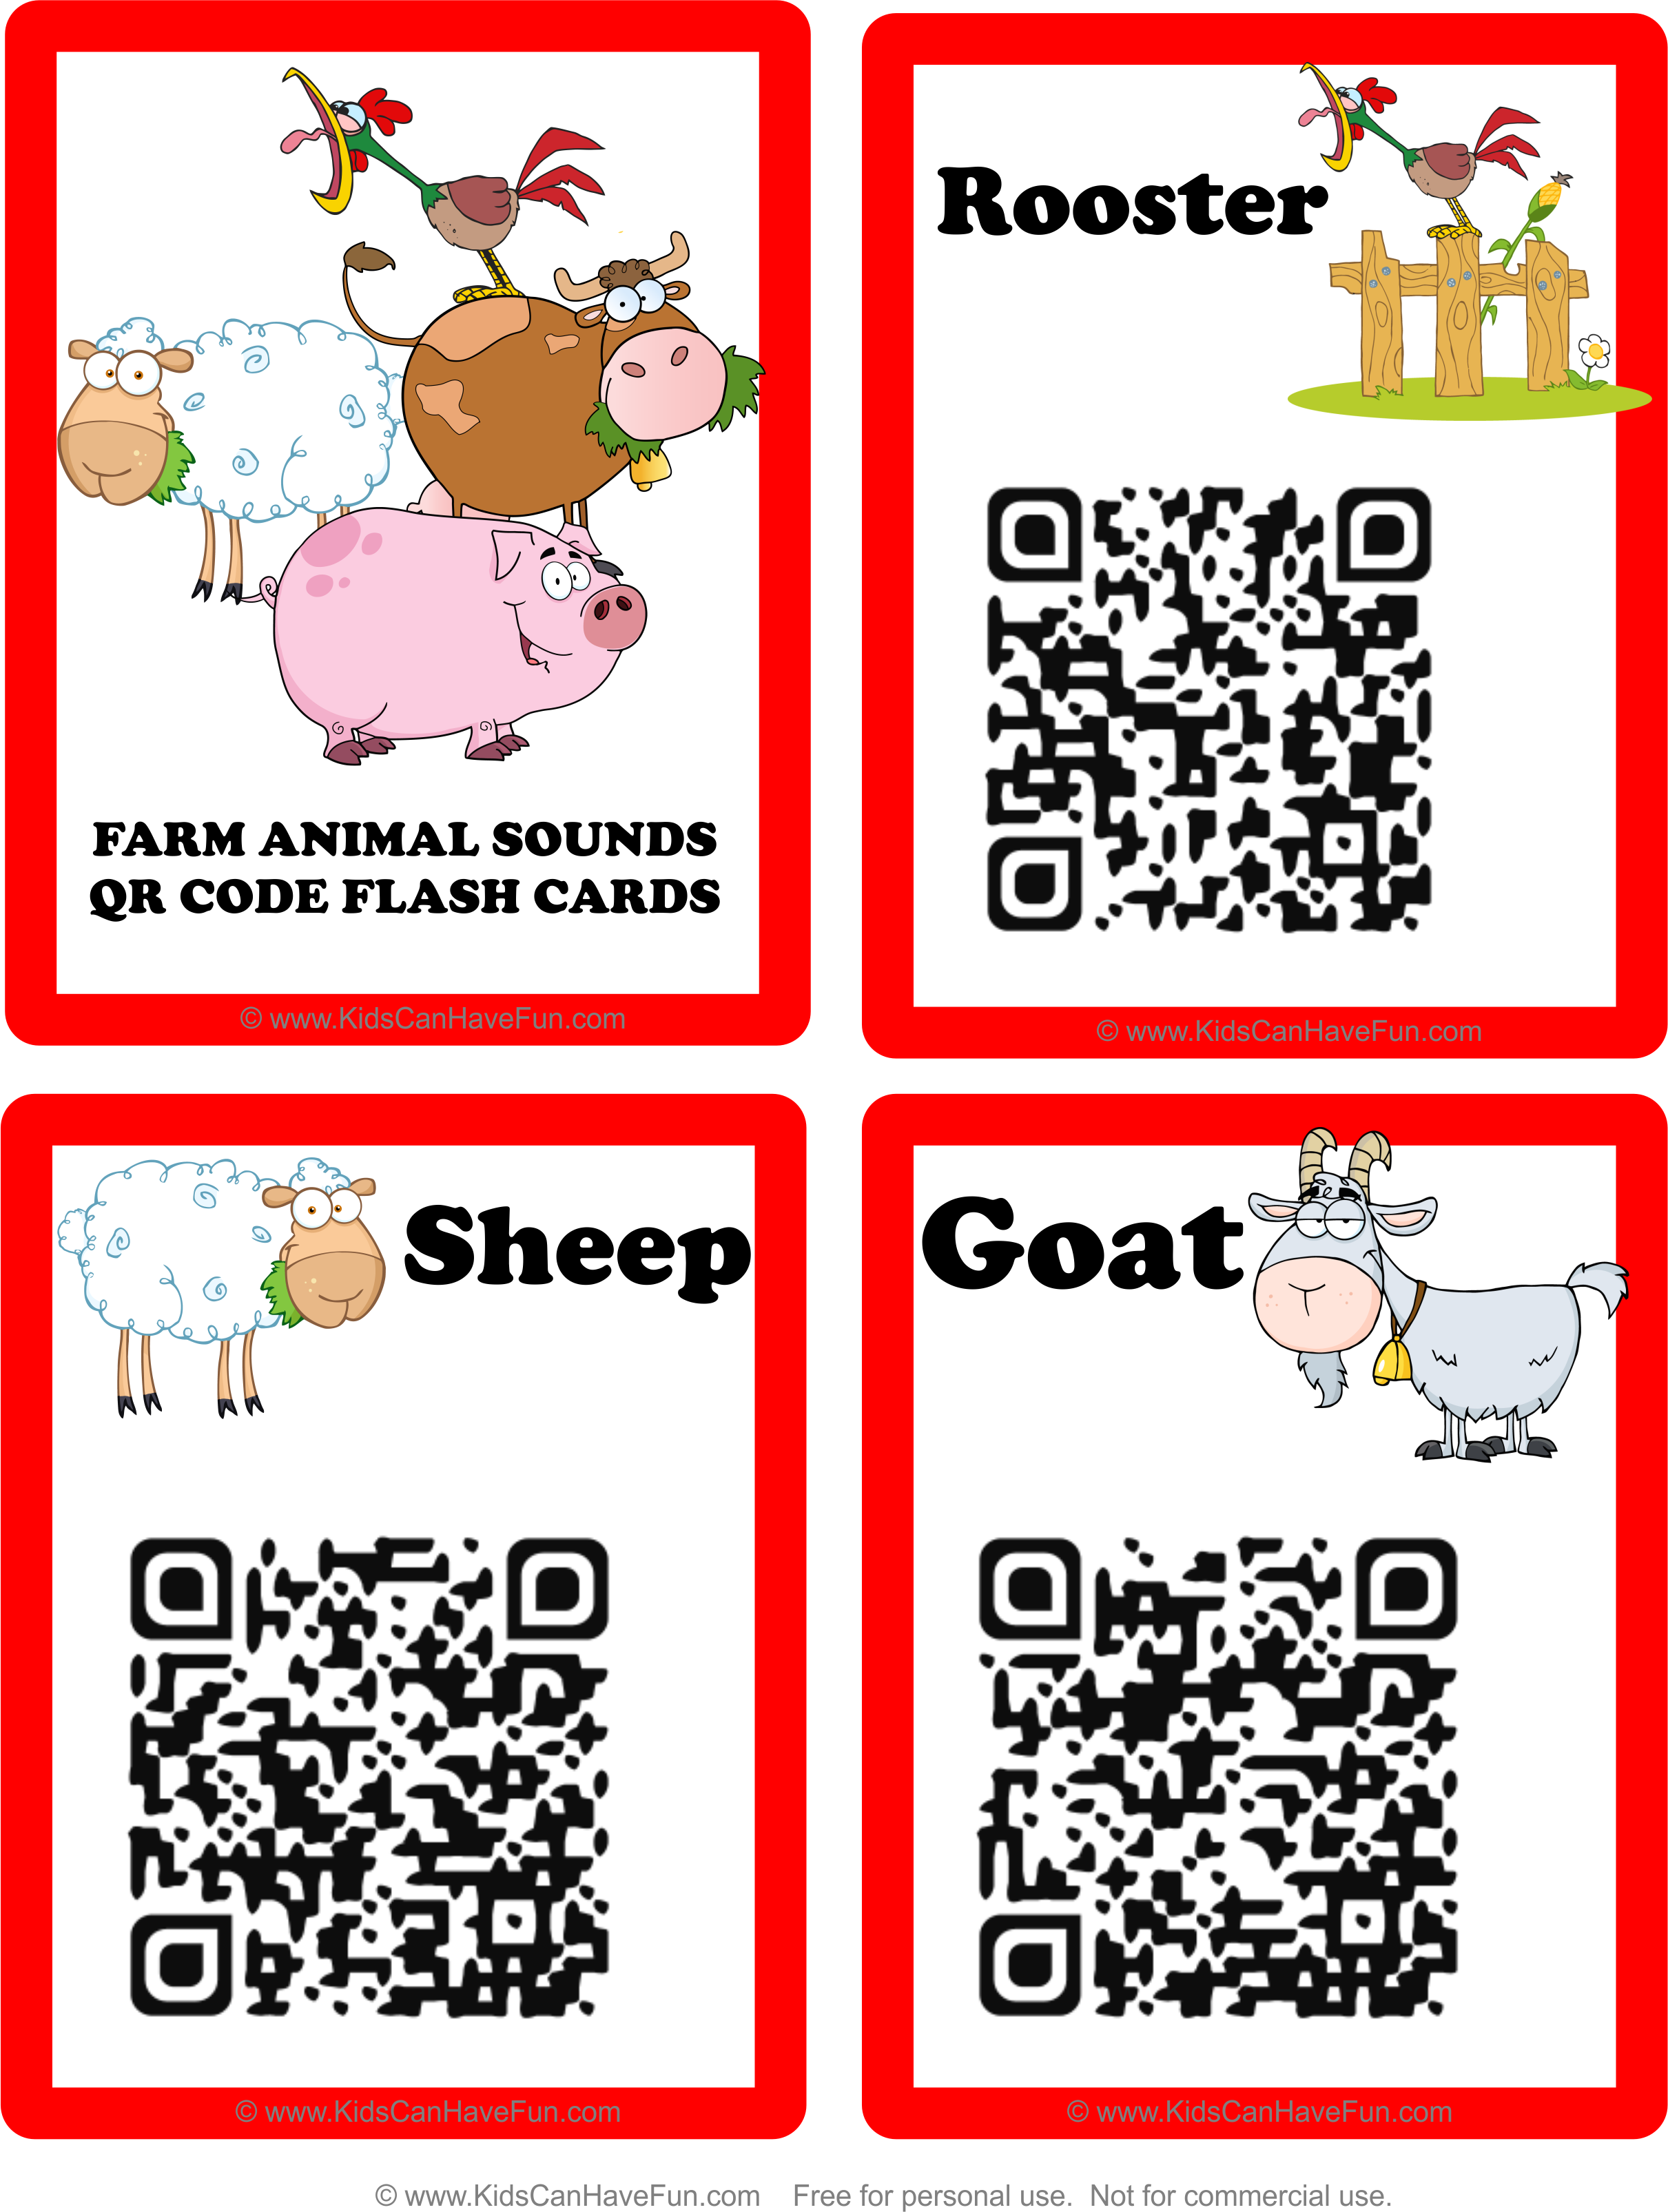 farm animal sounds flashcards with qr codes just scan the qr codes to listen to the animal. Black Bedroom Furniture Sets. Home Design Ideas